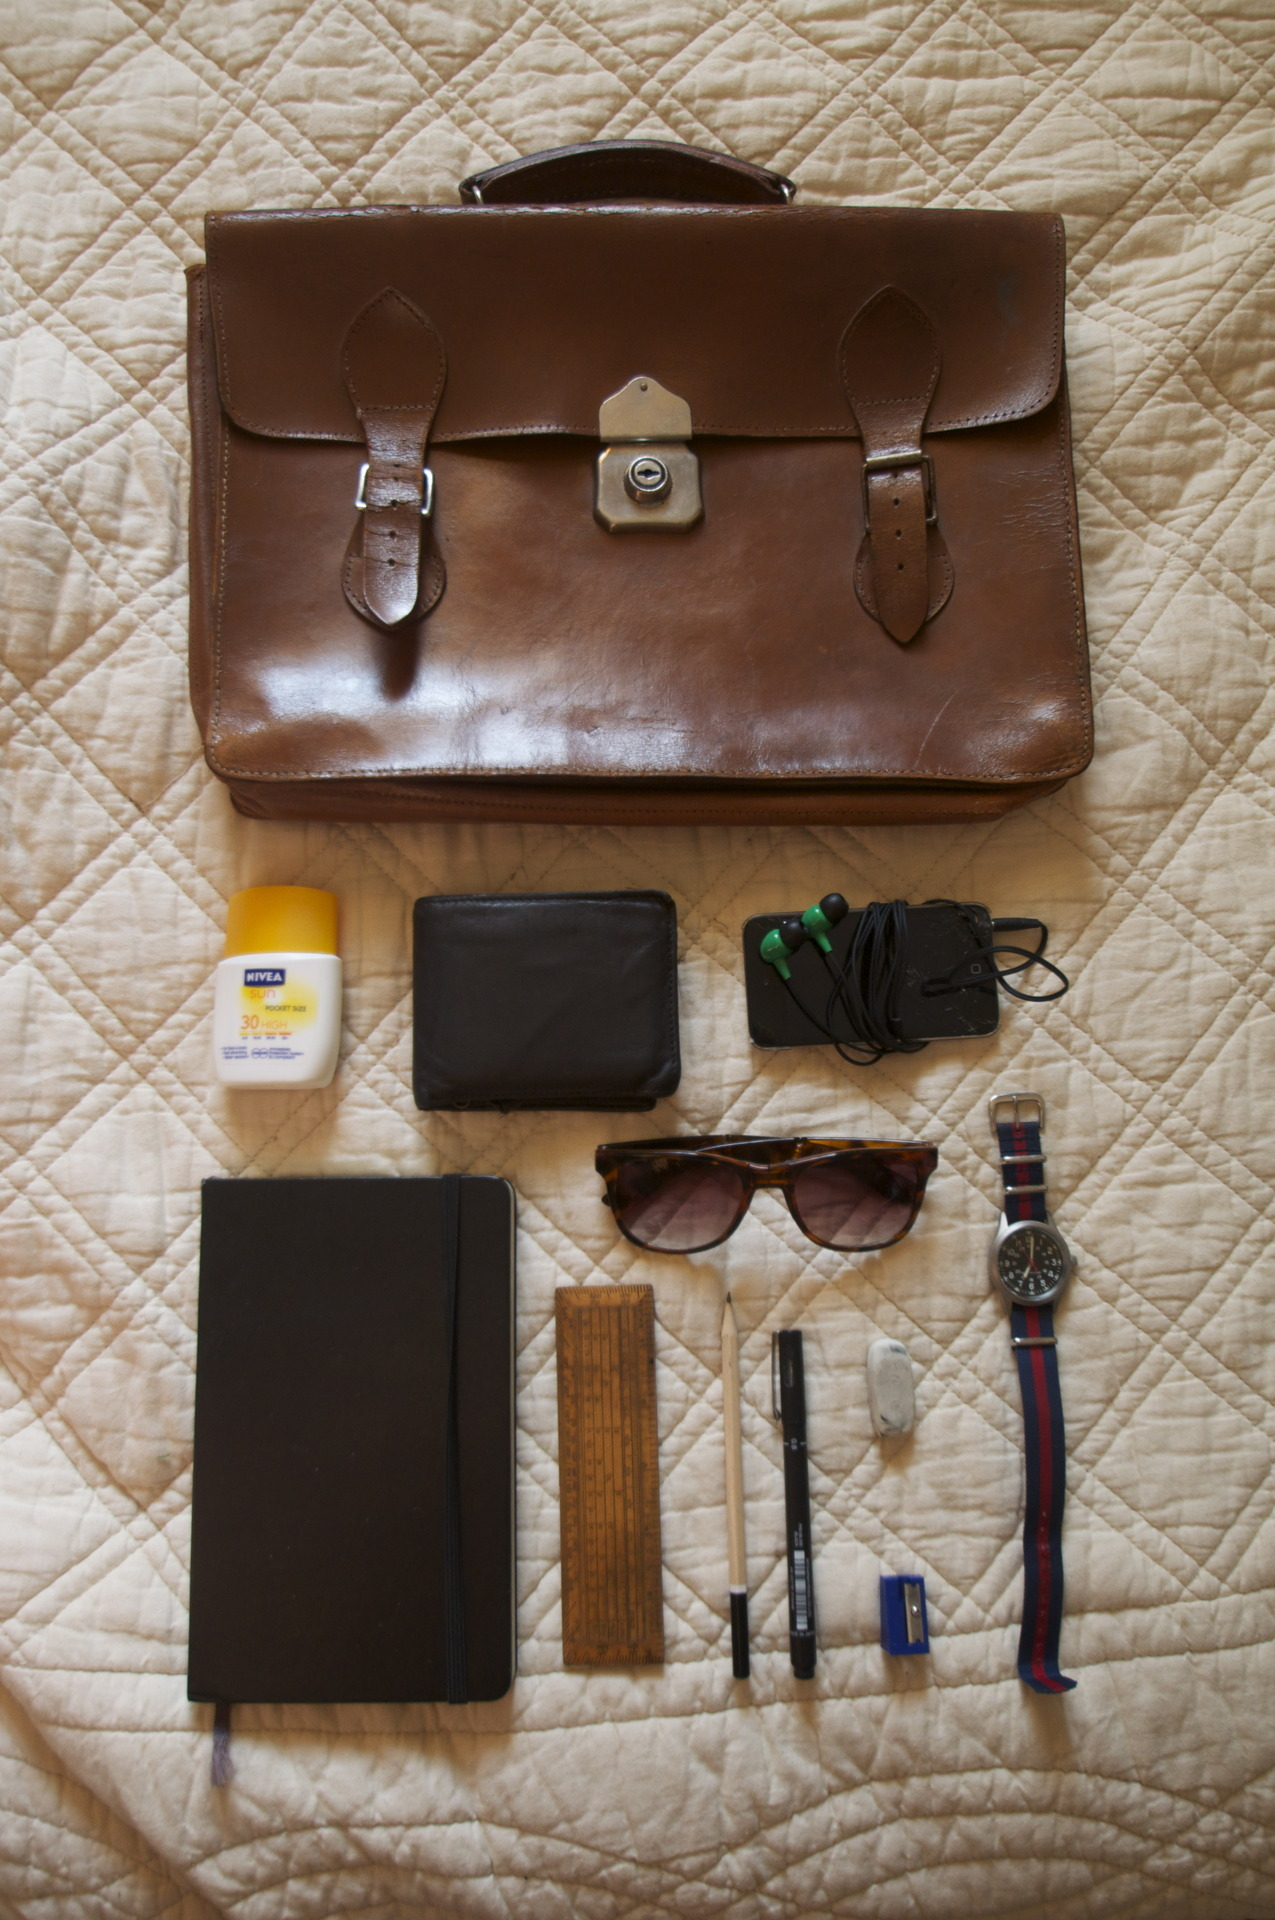 My explorers kit for NYC day 4.